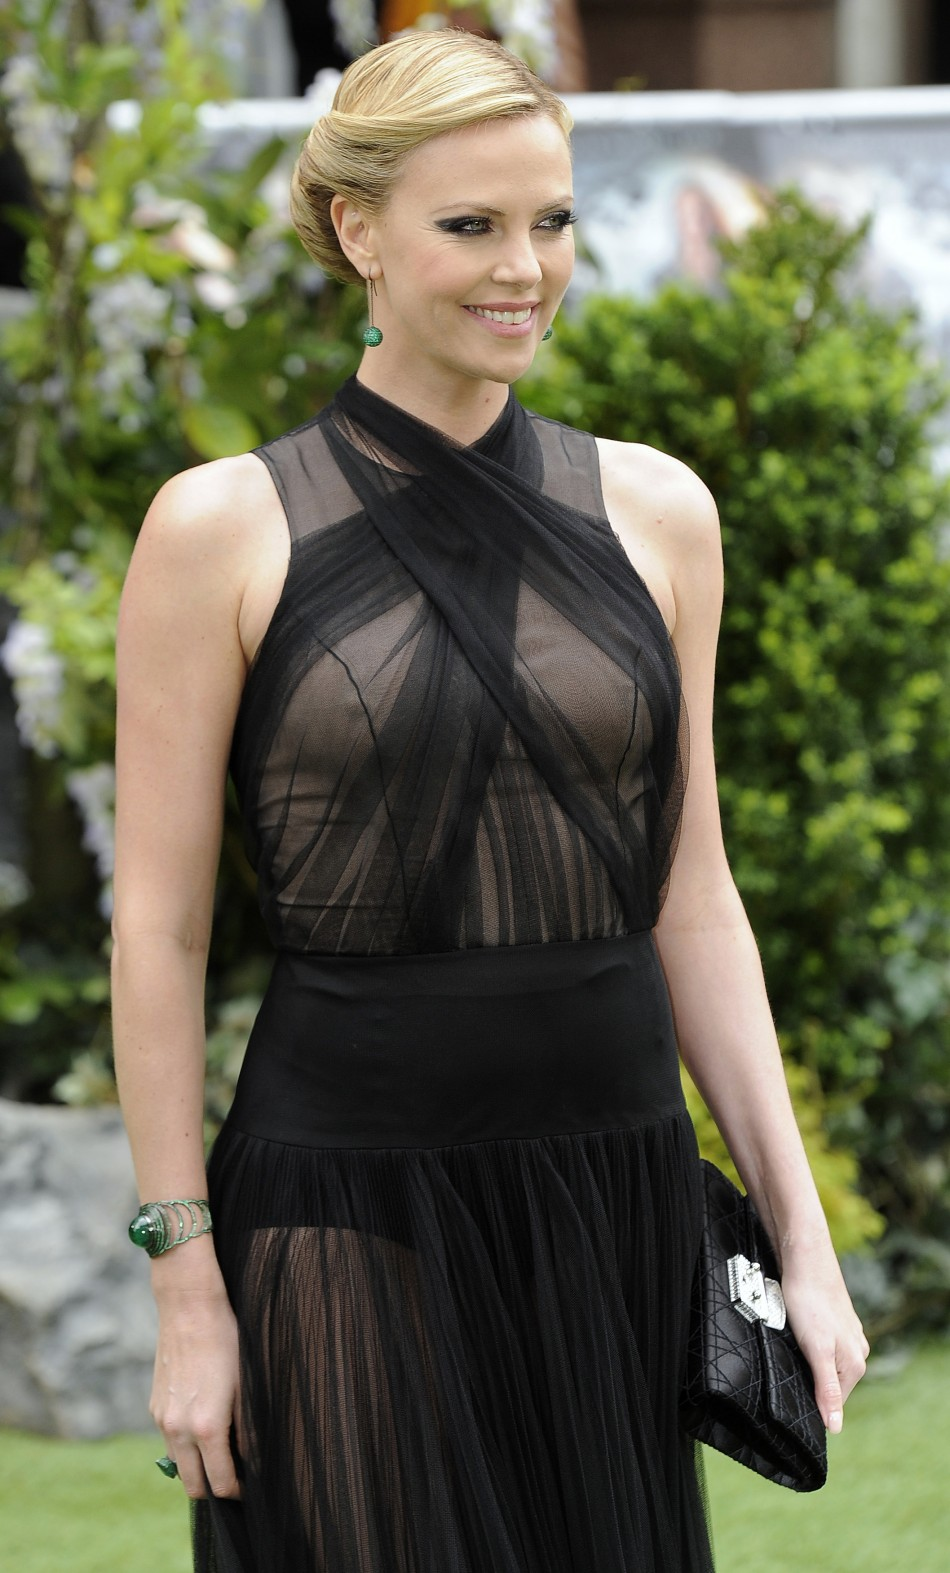 """Actress Charlize Theron poses for photographers as she arrives for the world premiere of """"Snow White and the Huntsman"""" at Leicester Square in London"""